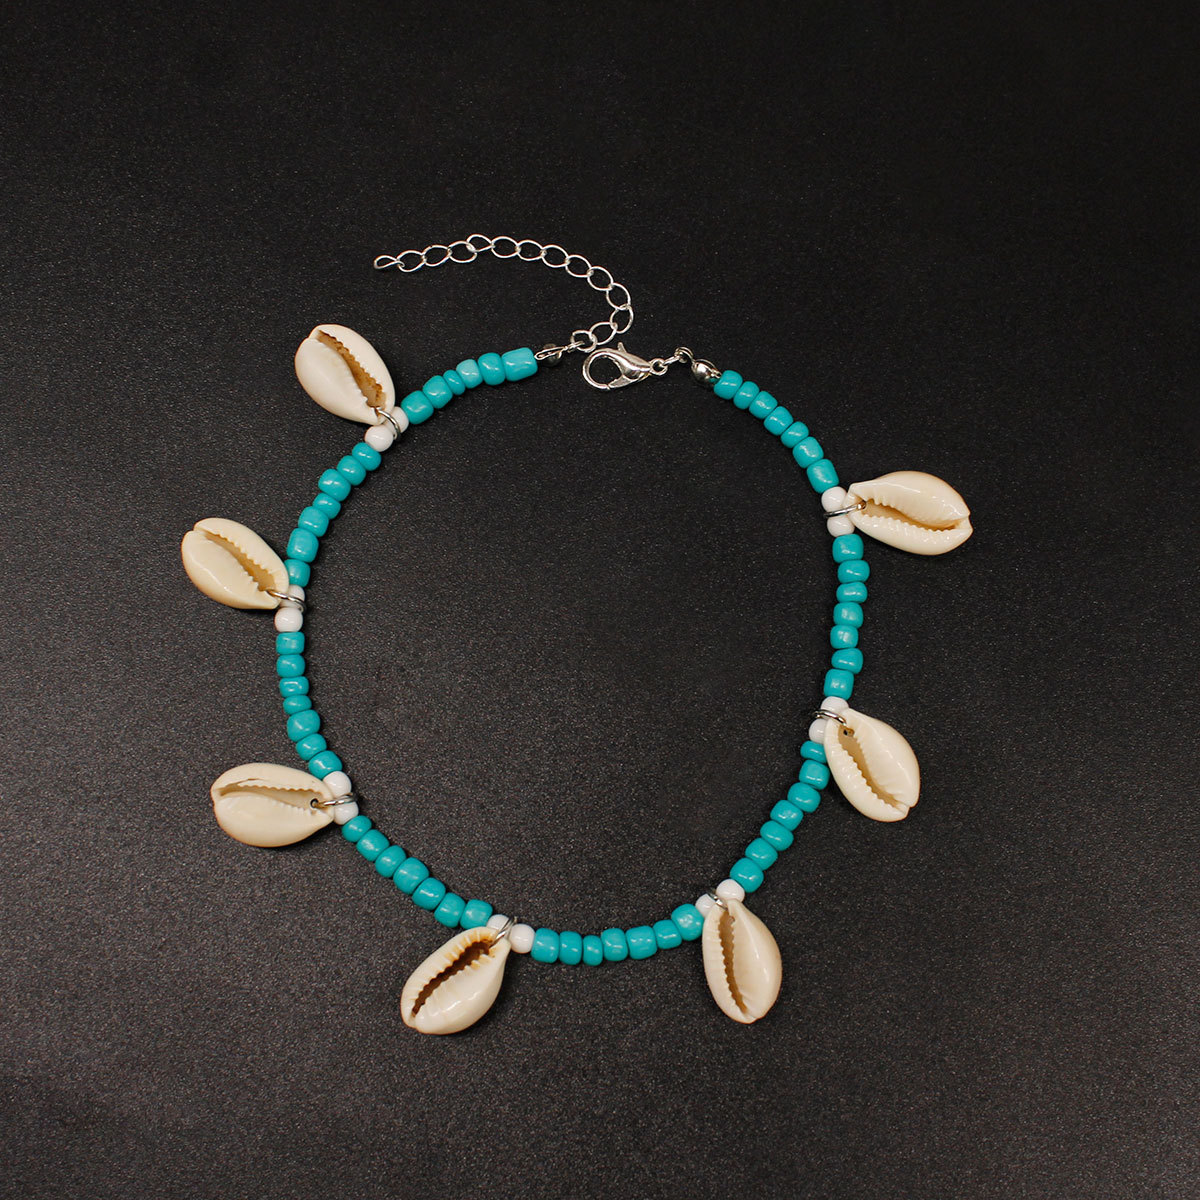 Natural Shell Anklet Beach Hand-Woven Rice Beads Foot Chain Women Fashion Jewelry Summer Beach Leg Chain